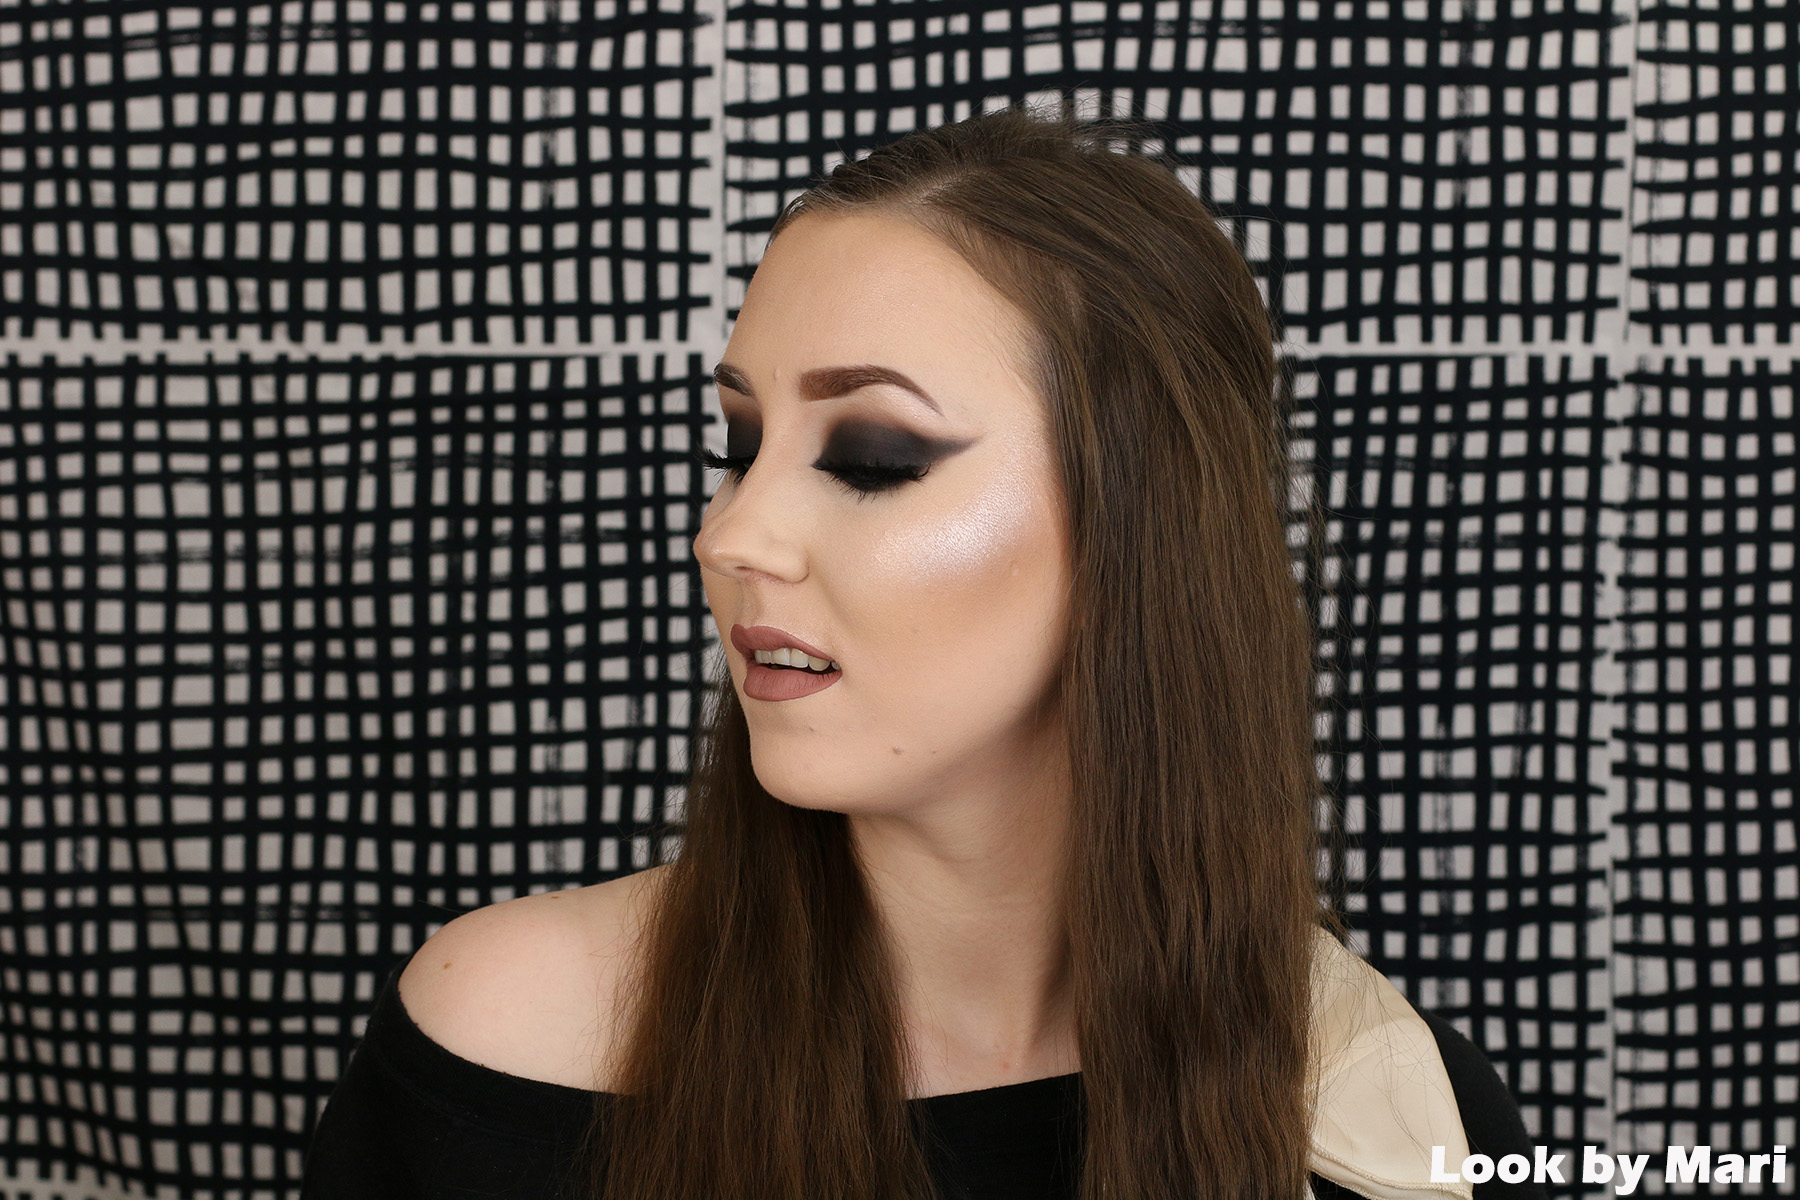 3 the jaclyn hill palette x morphe review price eu europe beautybay-3